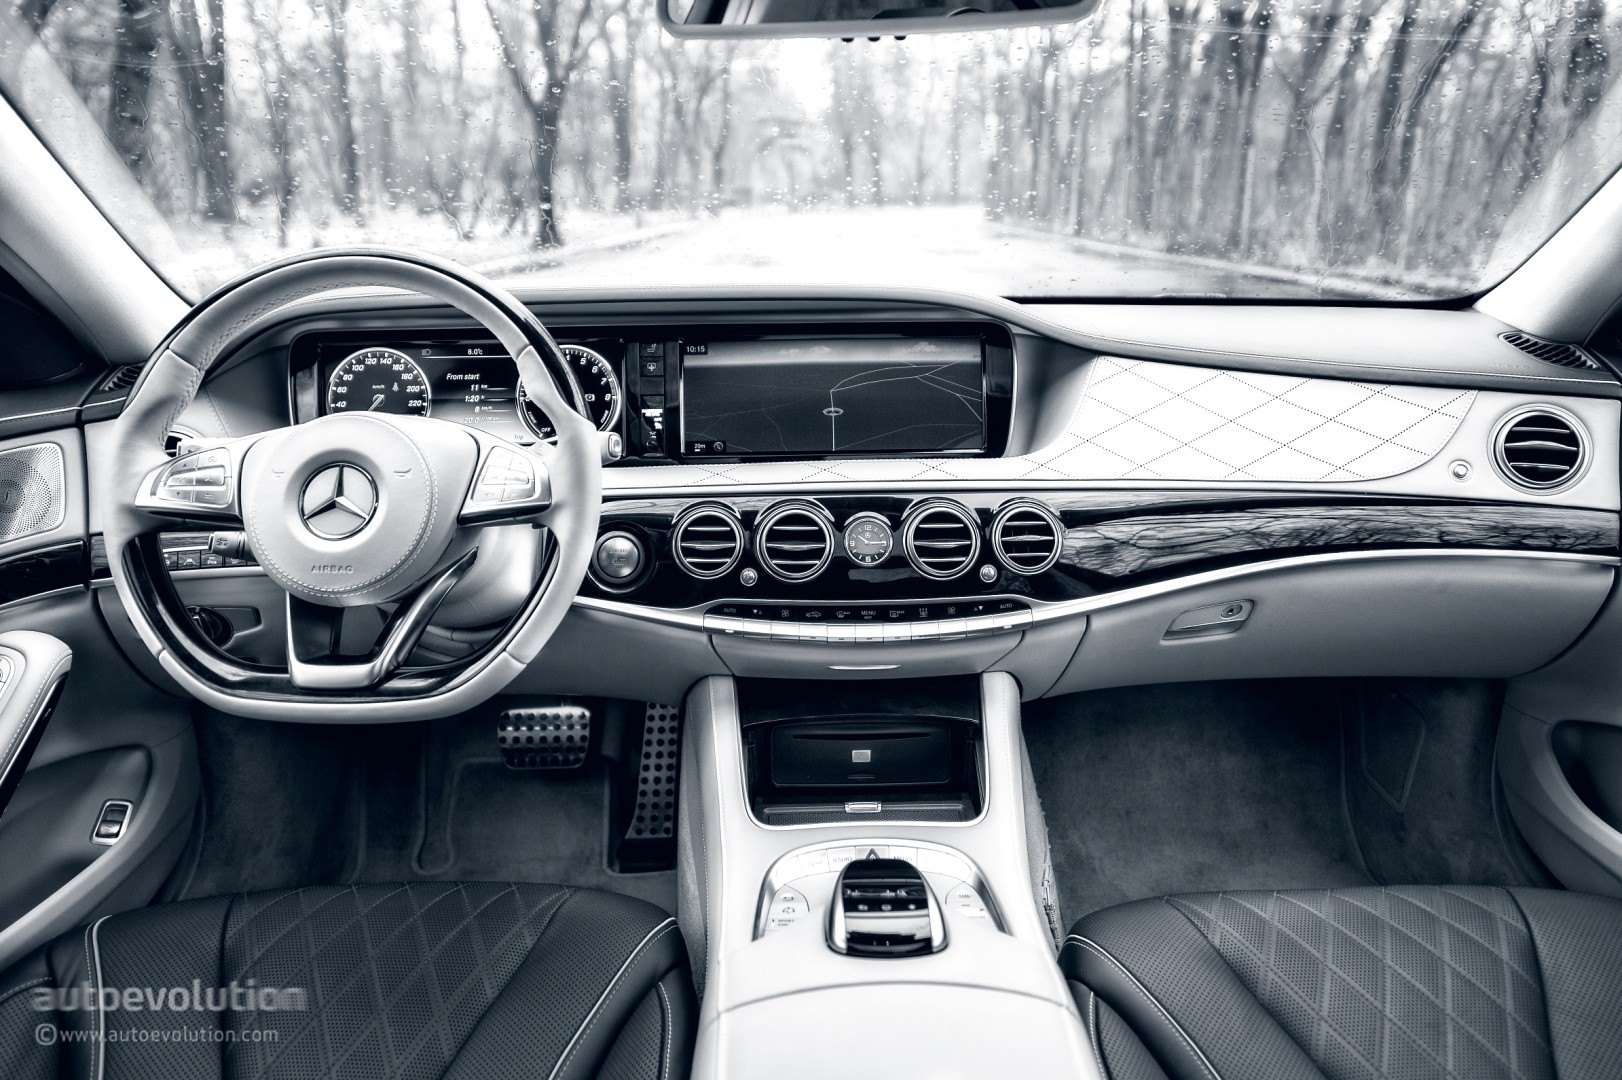 2015 MERCEDES-BENZ S500 Plug-In Hybrid Review - autoevolution